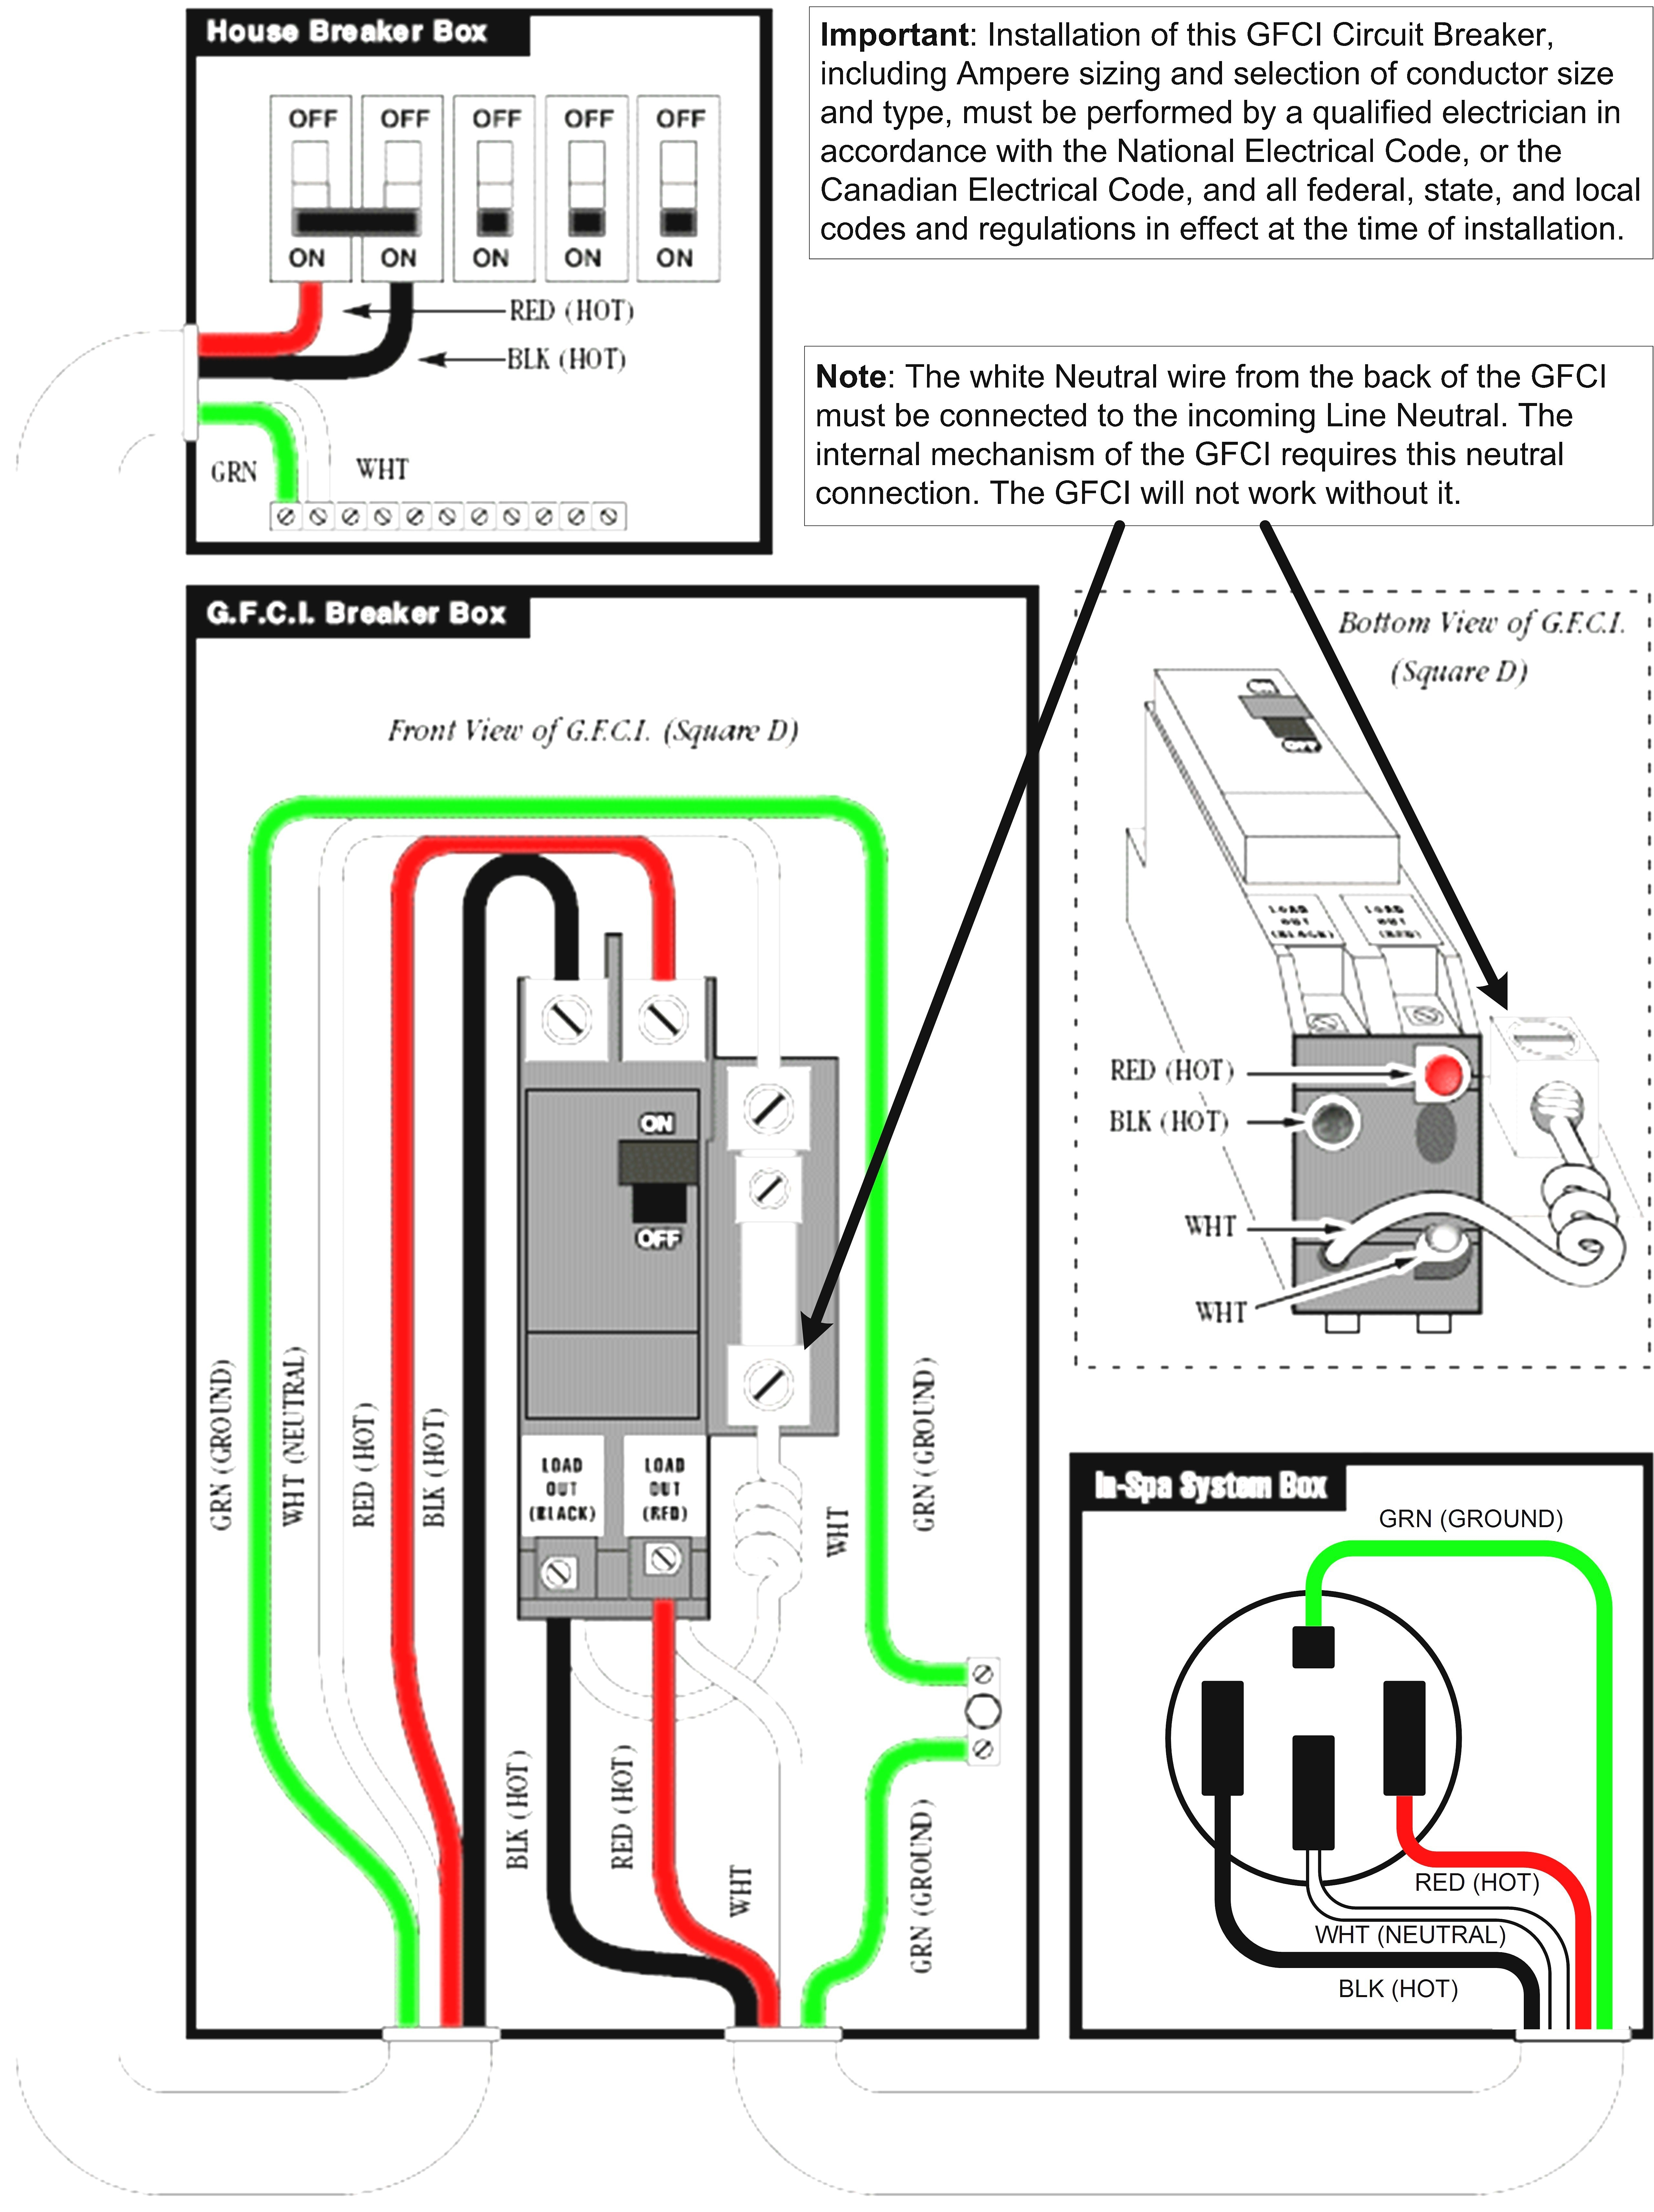 Wiring Multiple Outlets Diagram - Allove - Multiple Outlet Wiring Diagram